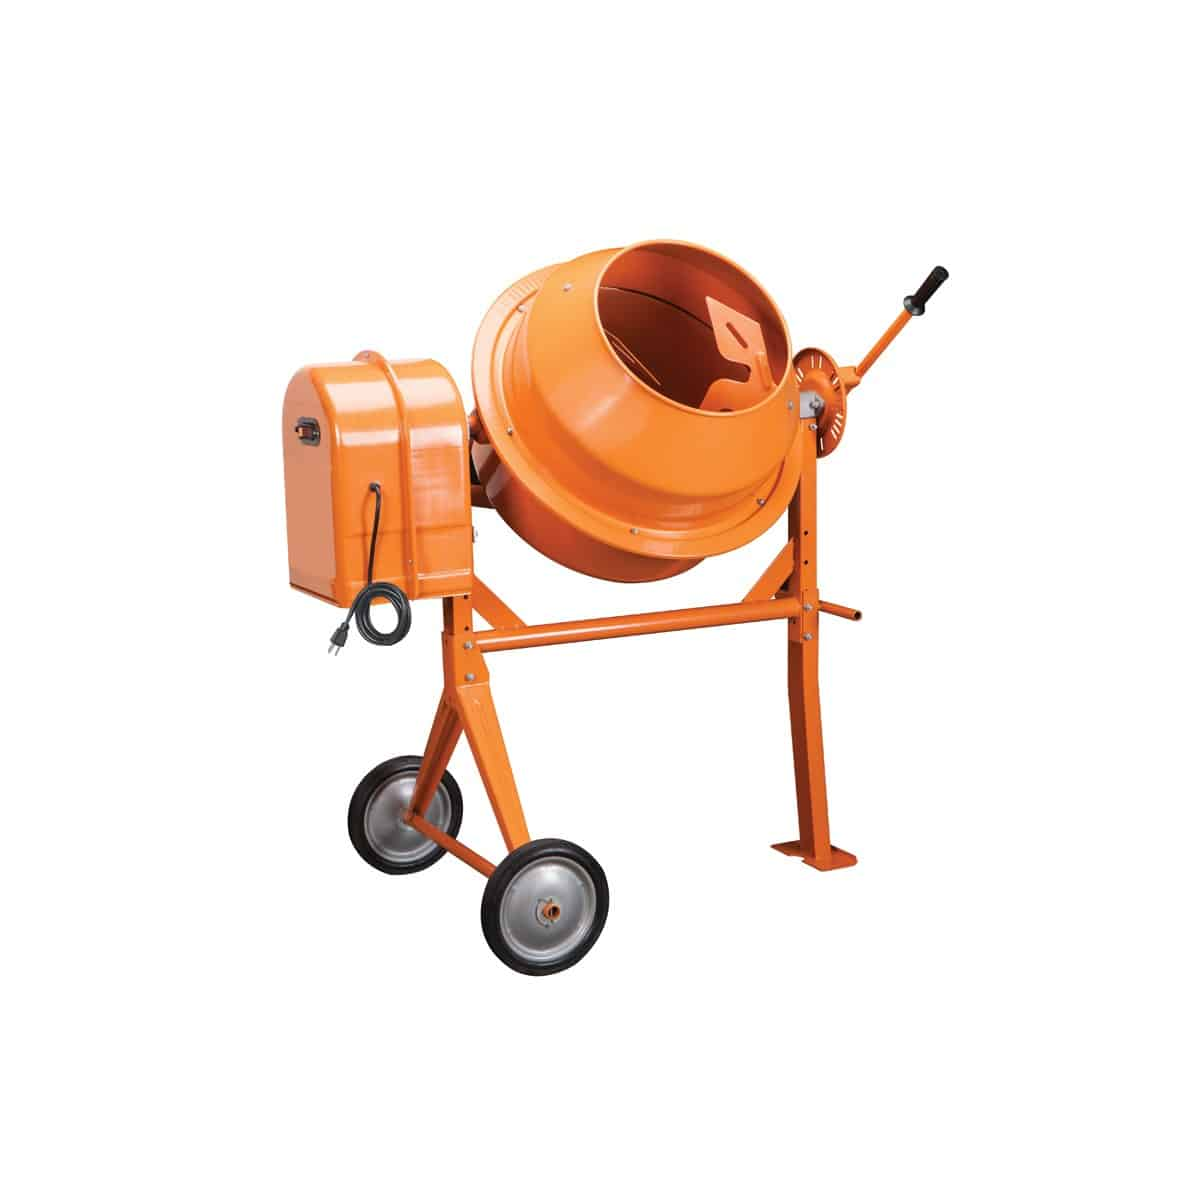 Concrete Mixer - 2 1by2 cubic feet